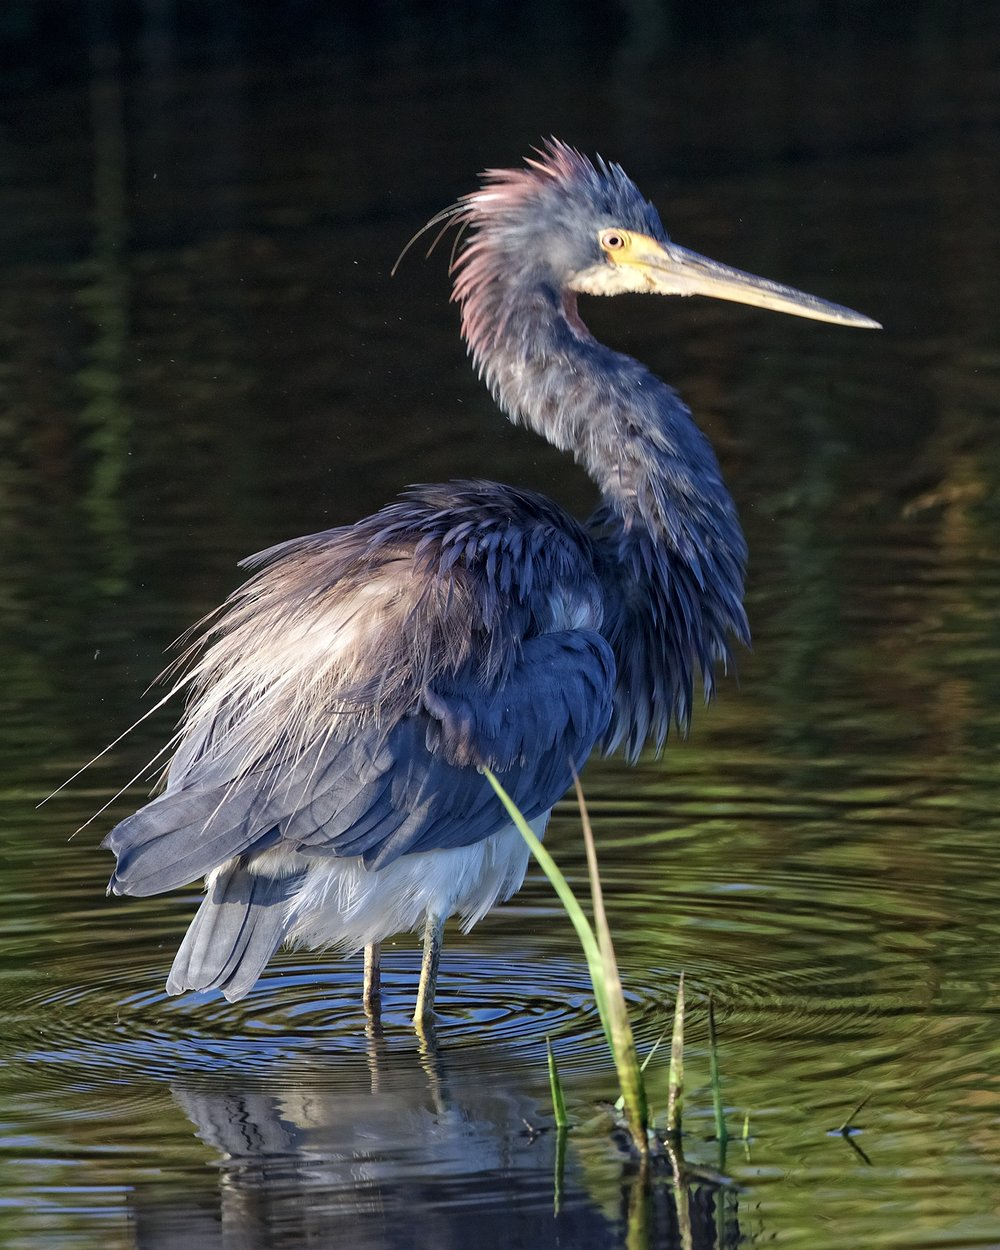 After a feather fluff the Tricolored Heron began to look for breakfast